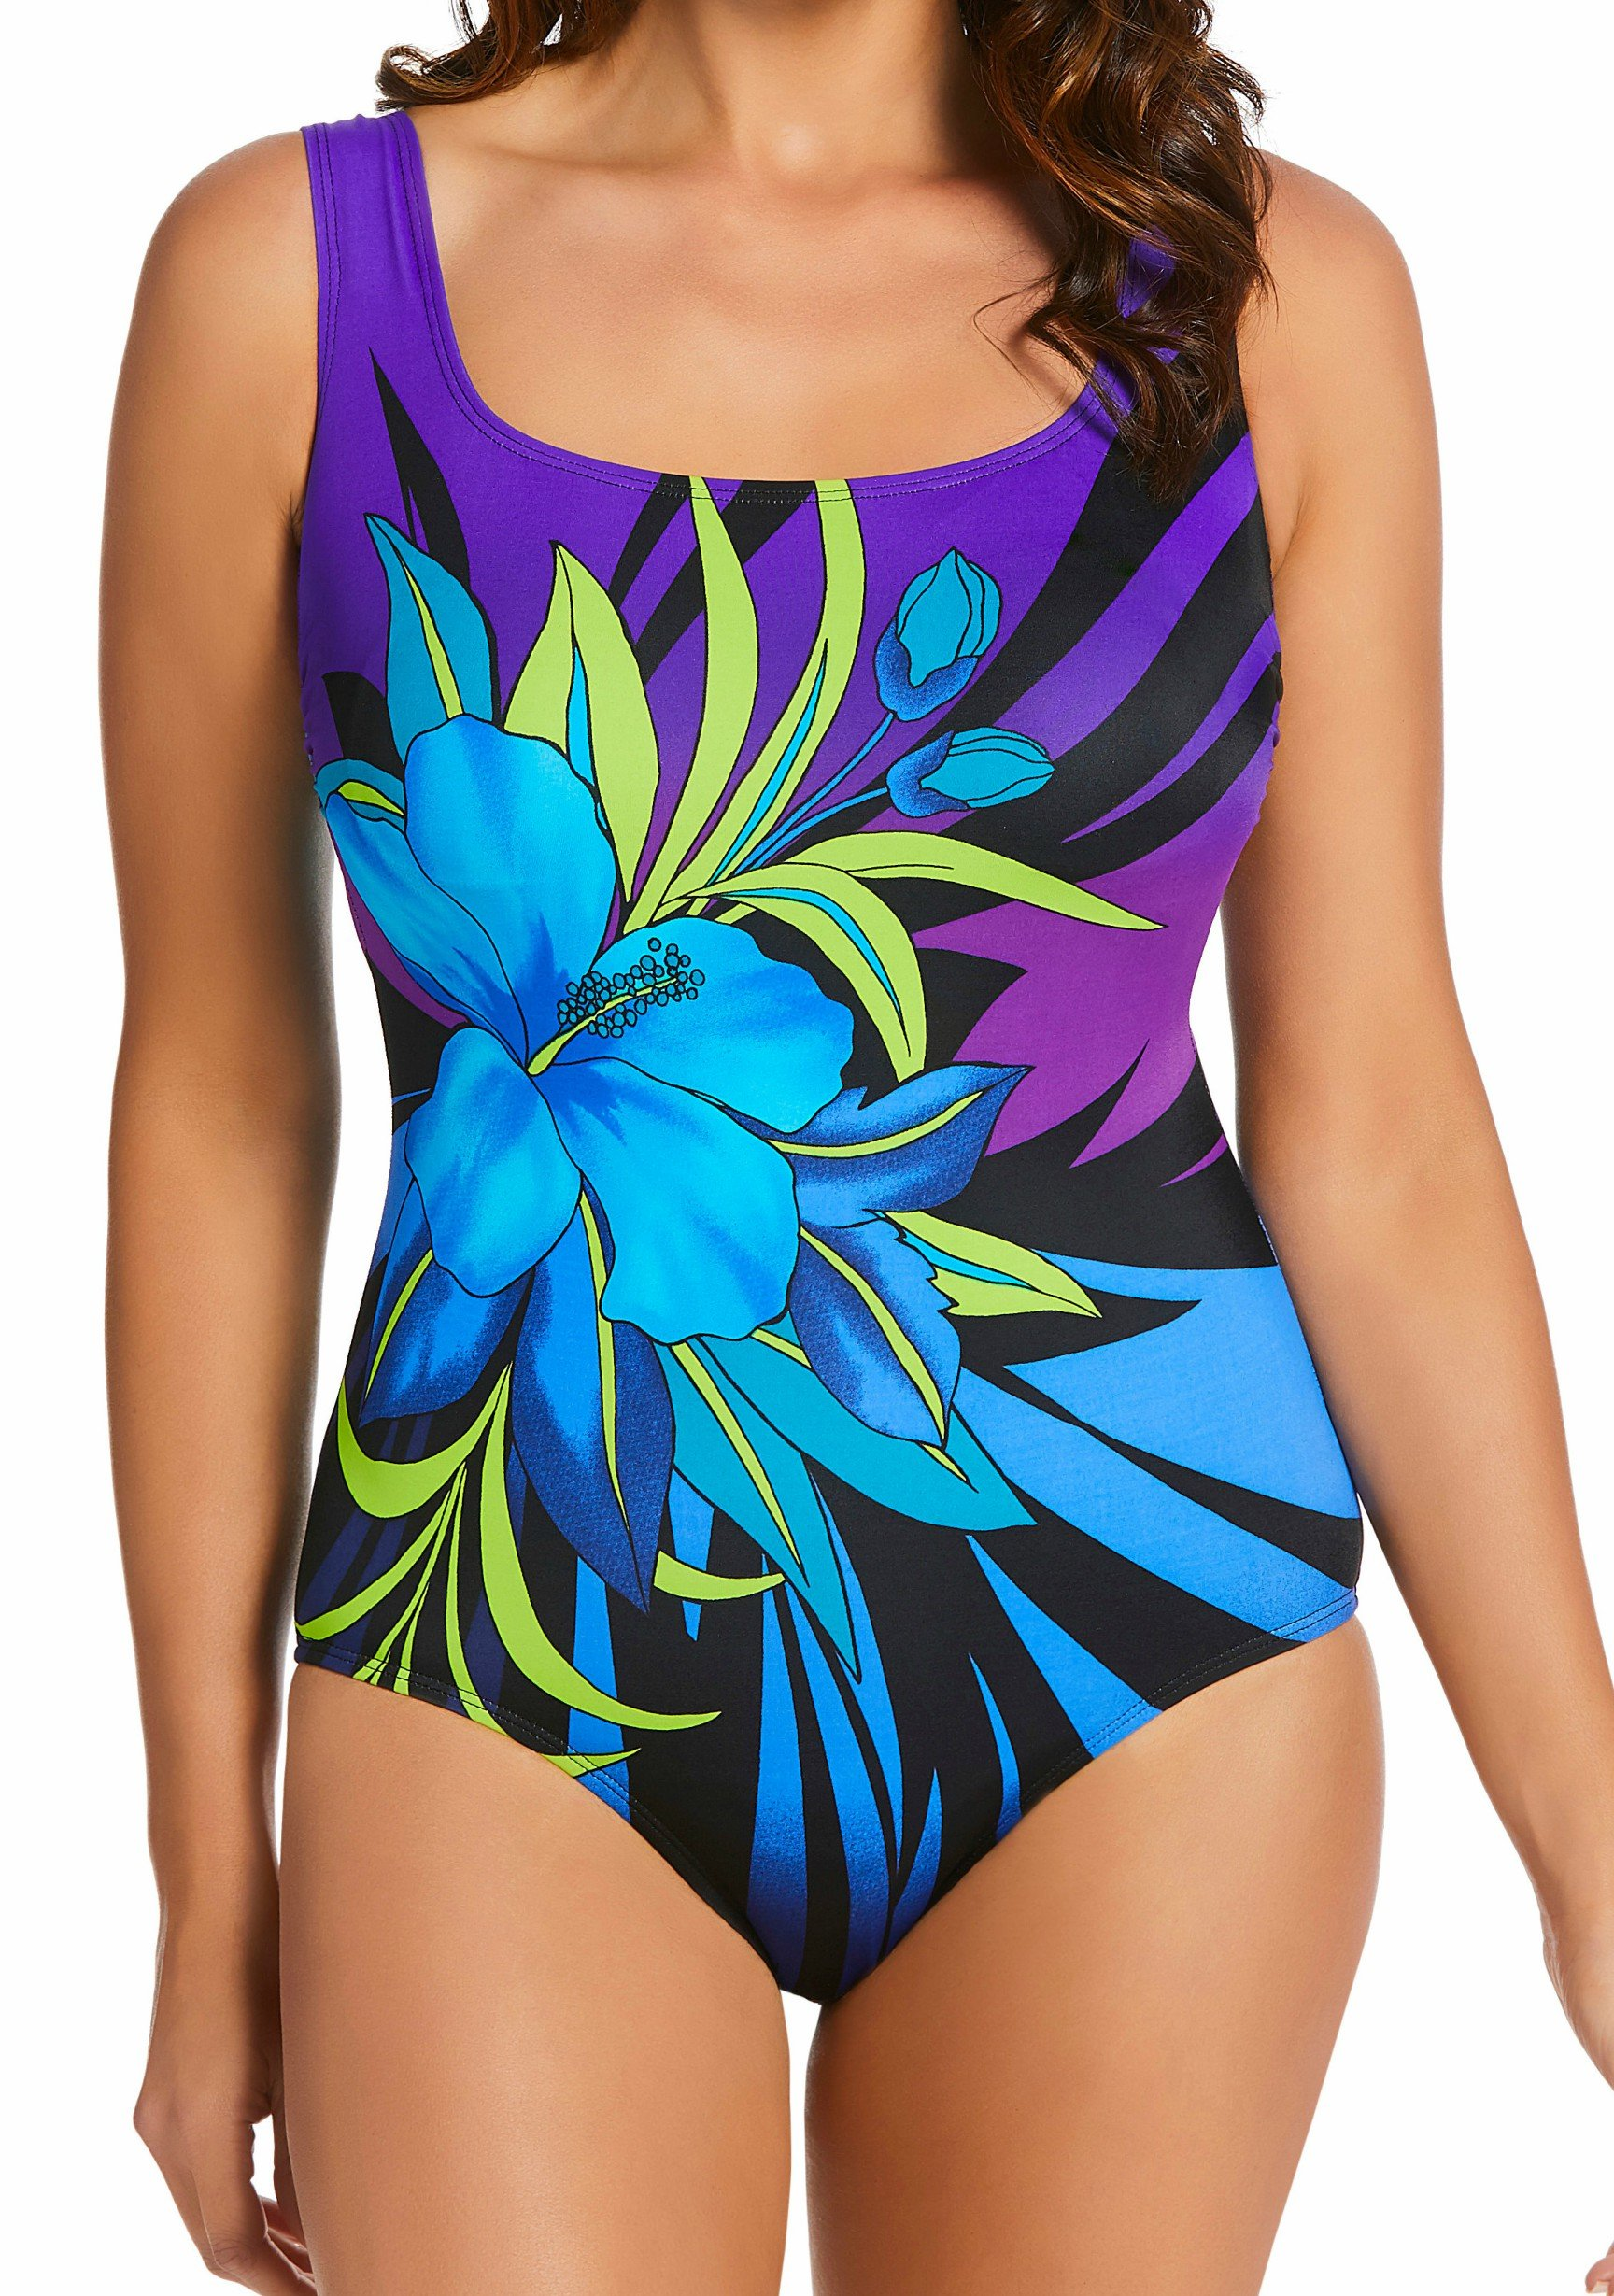 LONGITUDE Pinata One-Piece Swimsuit Style l180800 by Longitude